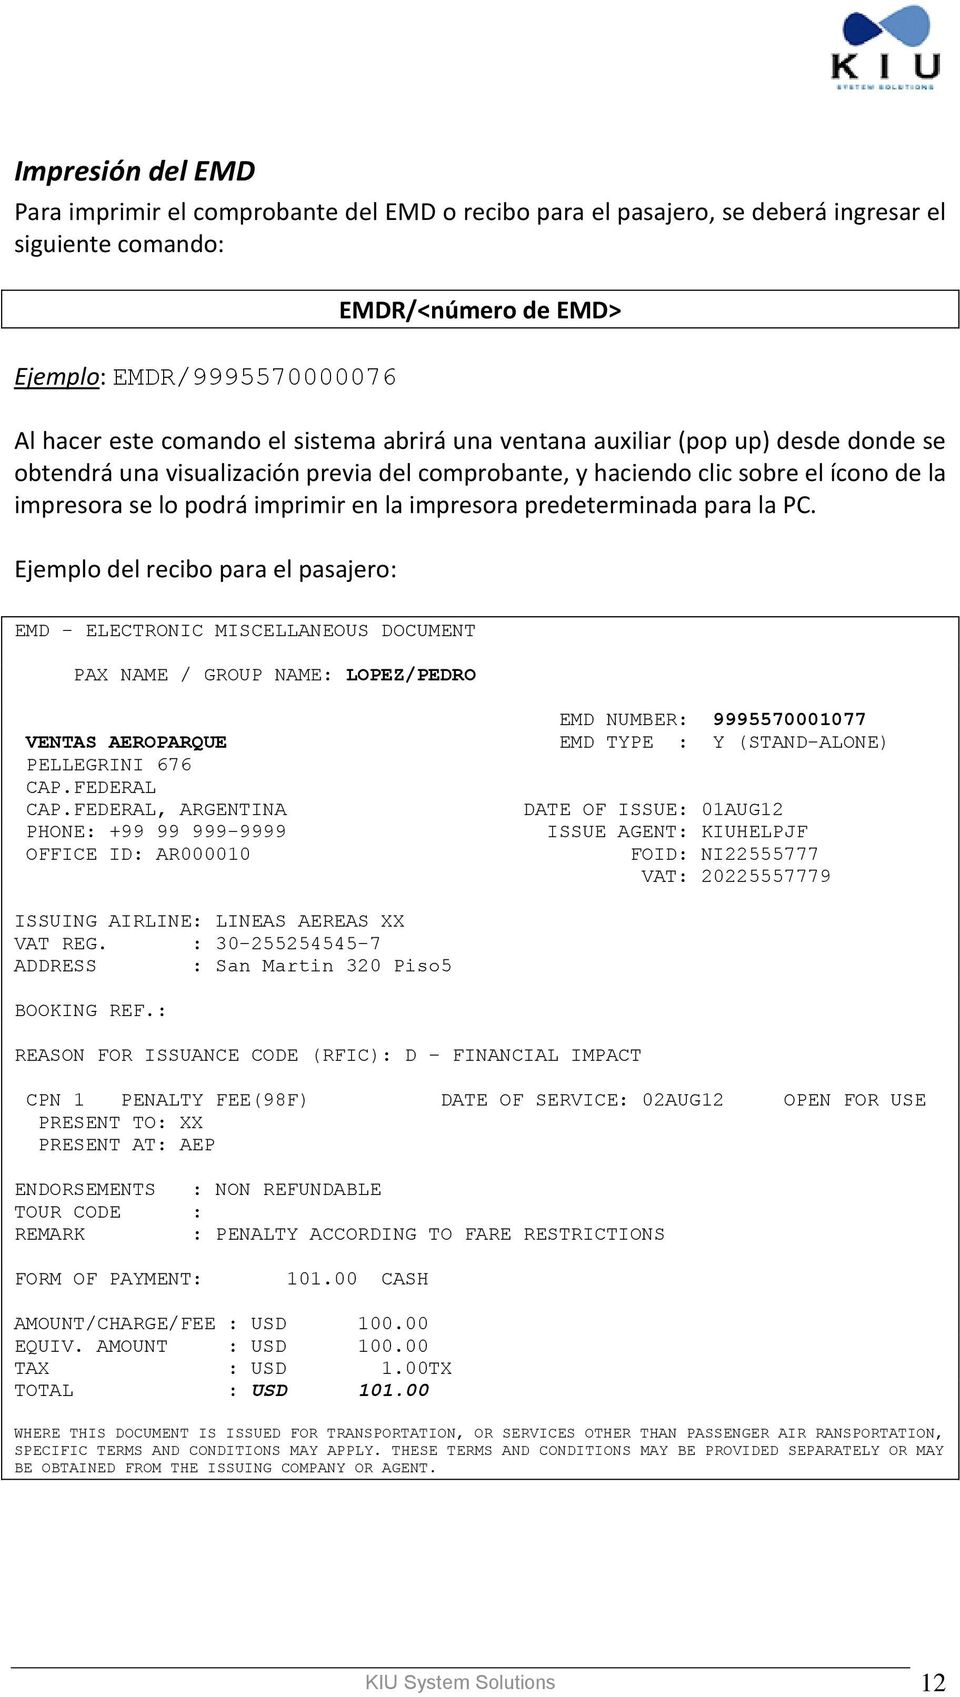 predeterminada para la PC. Ejemplo del recibo para el pasajero: EMD - ELECTRONIC MISCELLANEOUS DOCUMENT PAX NAME / GROUP NAME: LOPEZ/PEDRO VENTAS AEROPARQUE PELLEGRINI 676 CAP.FEDERAL CAP.